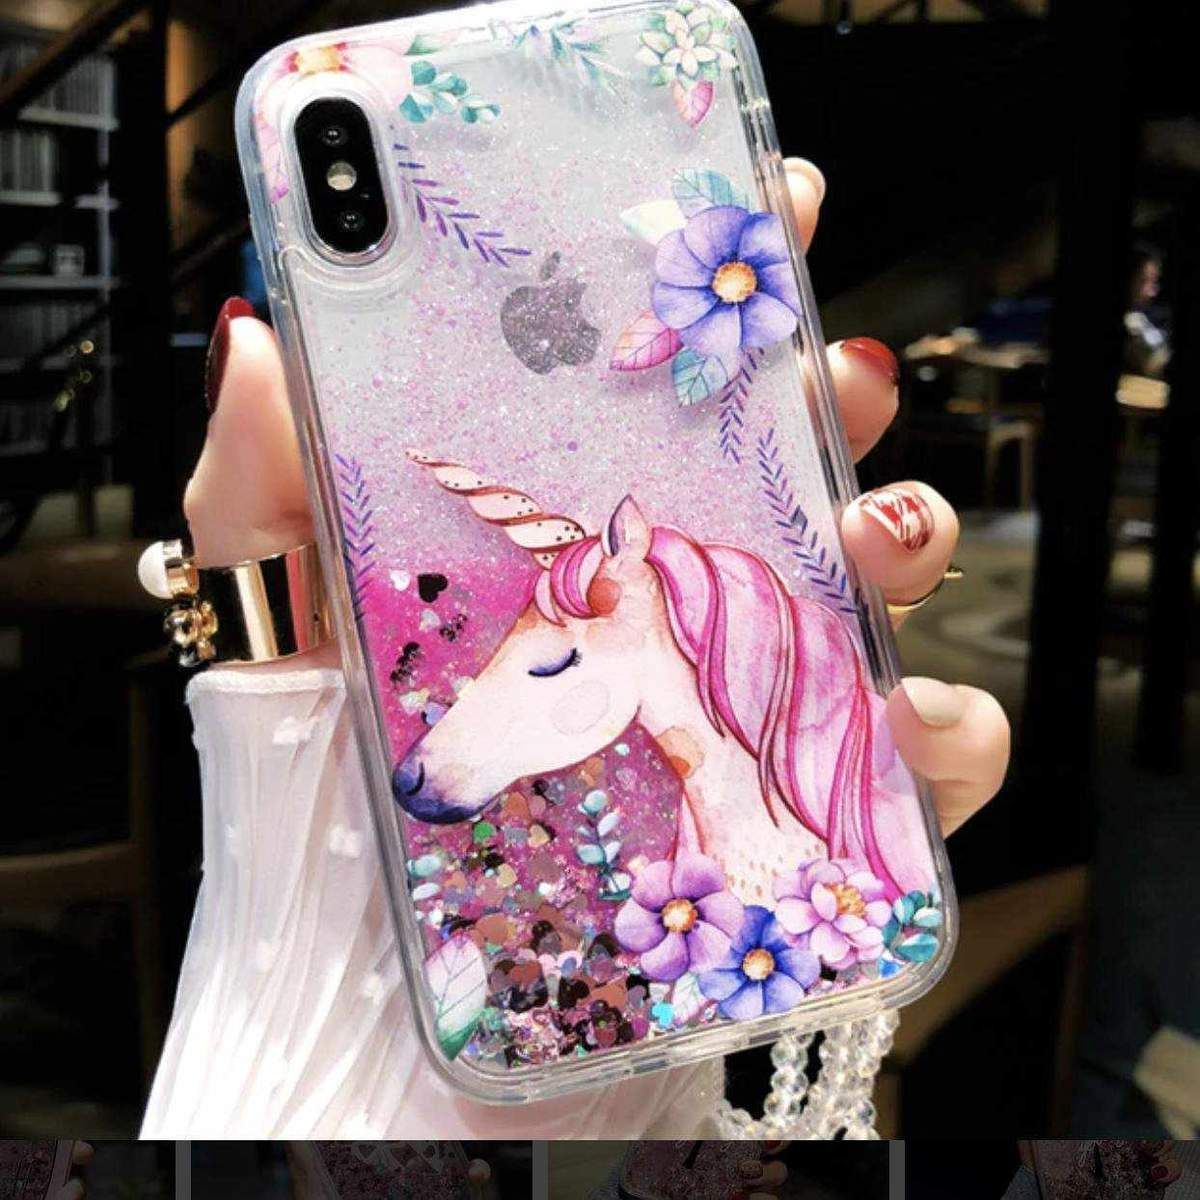 waterfall iphone case waterfalliphonecase waterfallphonecase liquidiphonecase glitter pop iphone in 2020 glitter iphone 6 case chic iphone case glitter iphone case pinterest